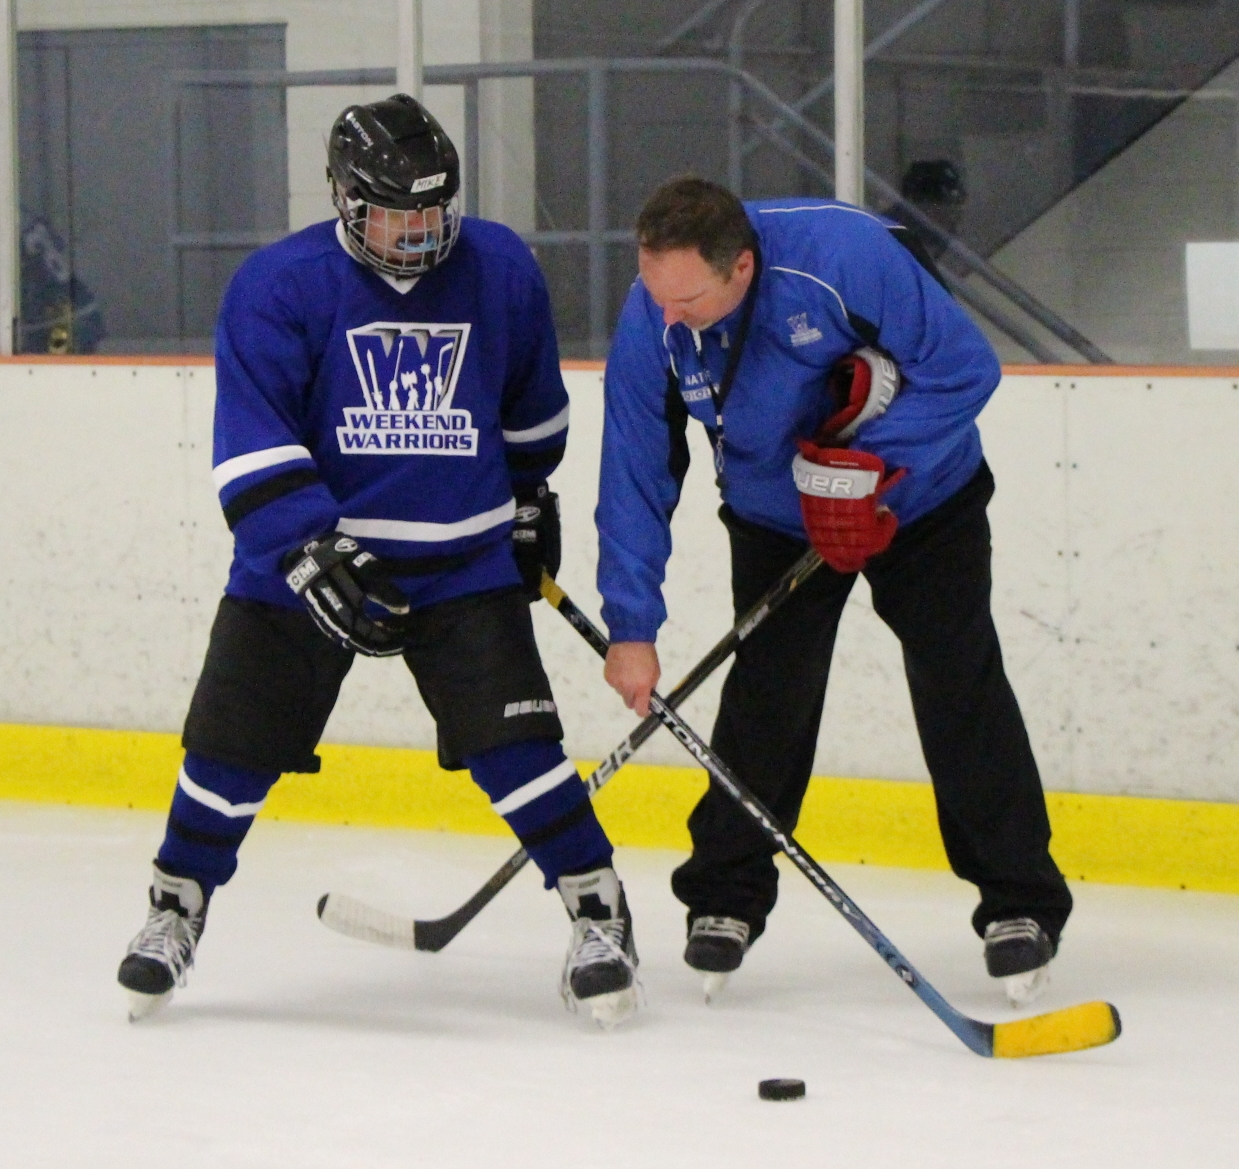 Coach Nate helps a player with stick handling